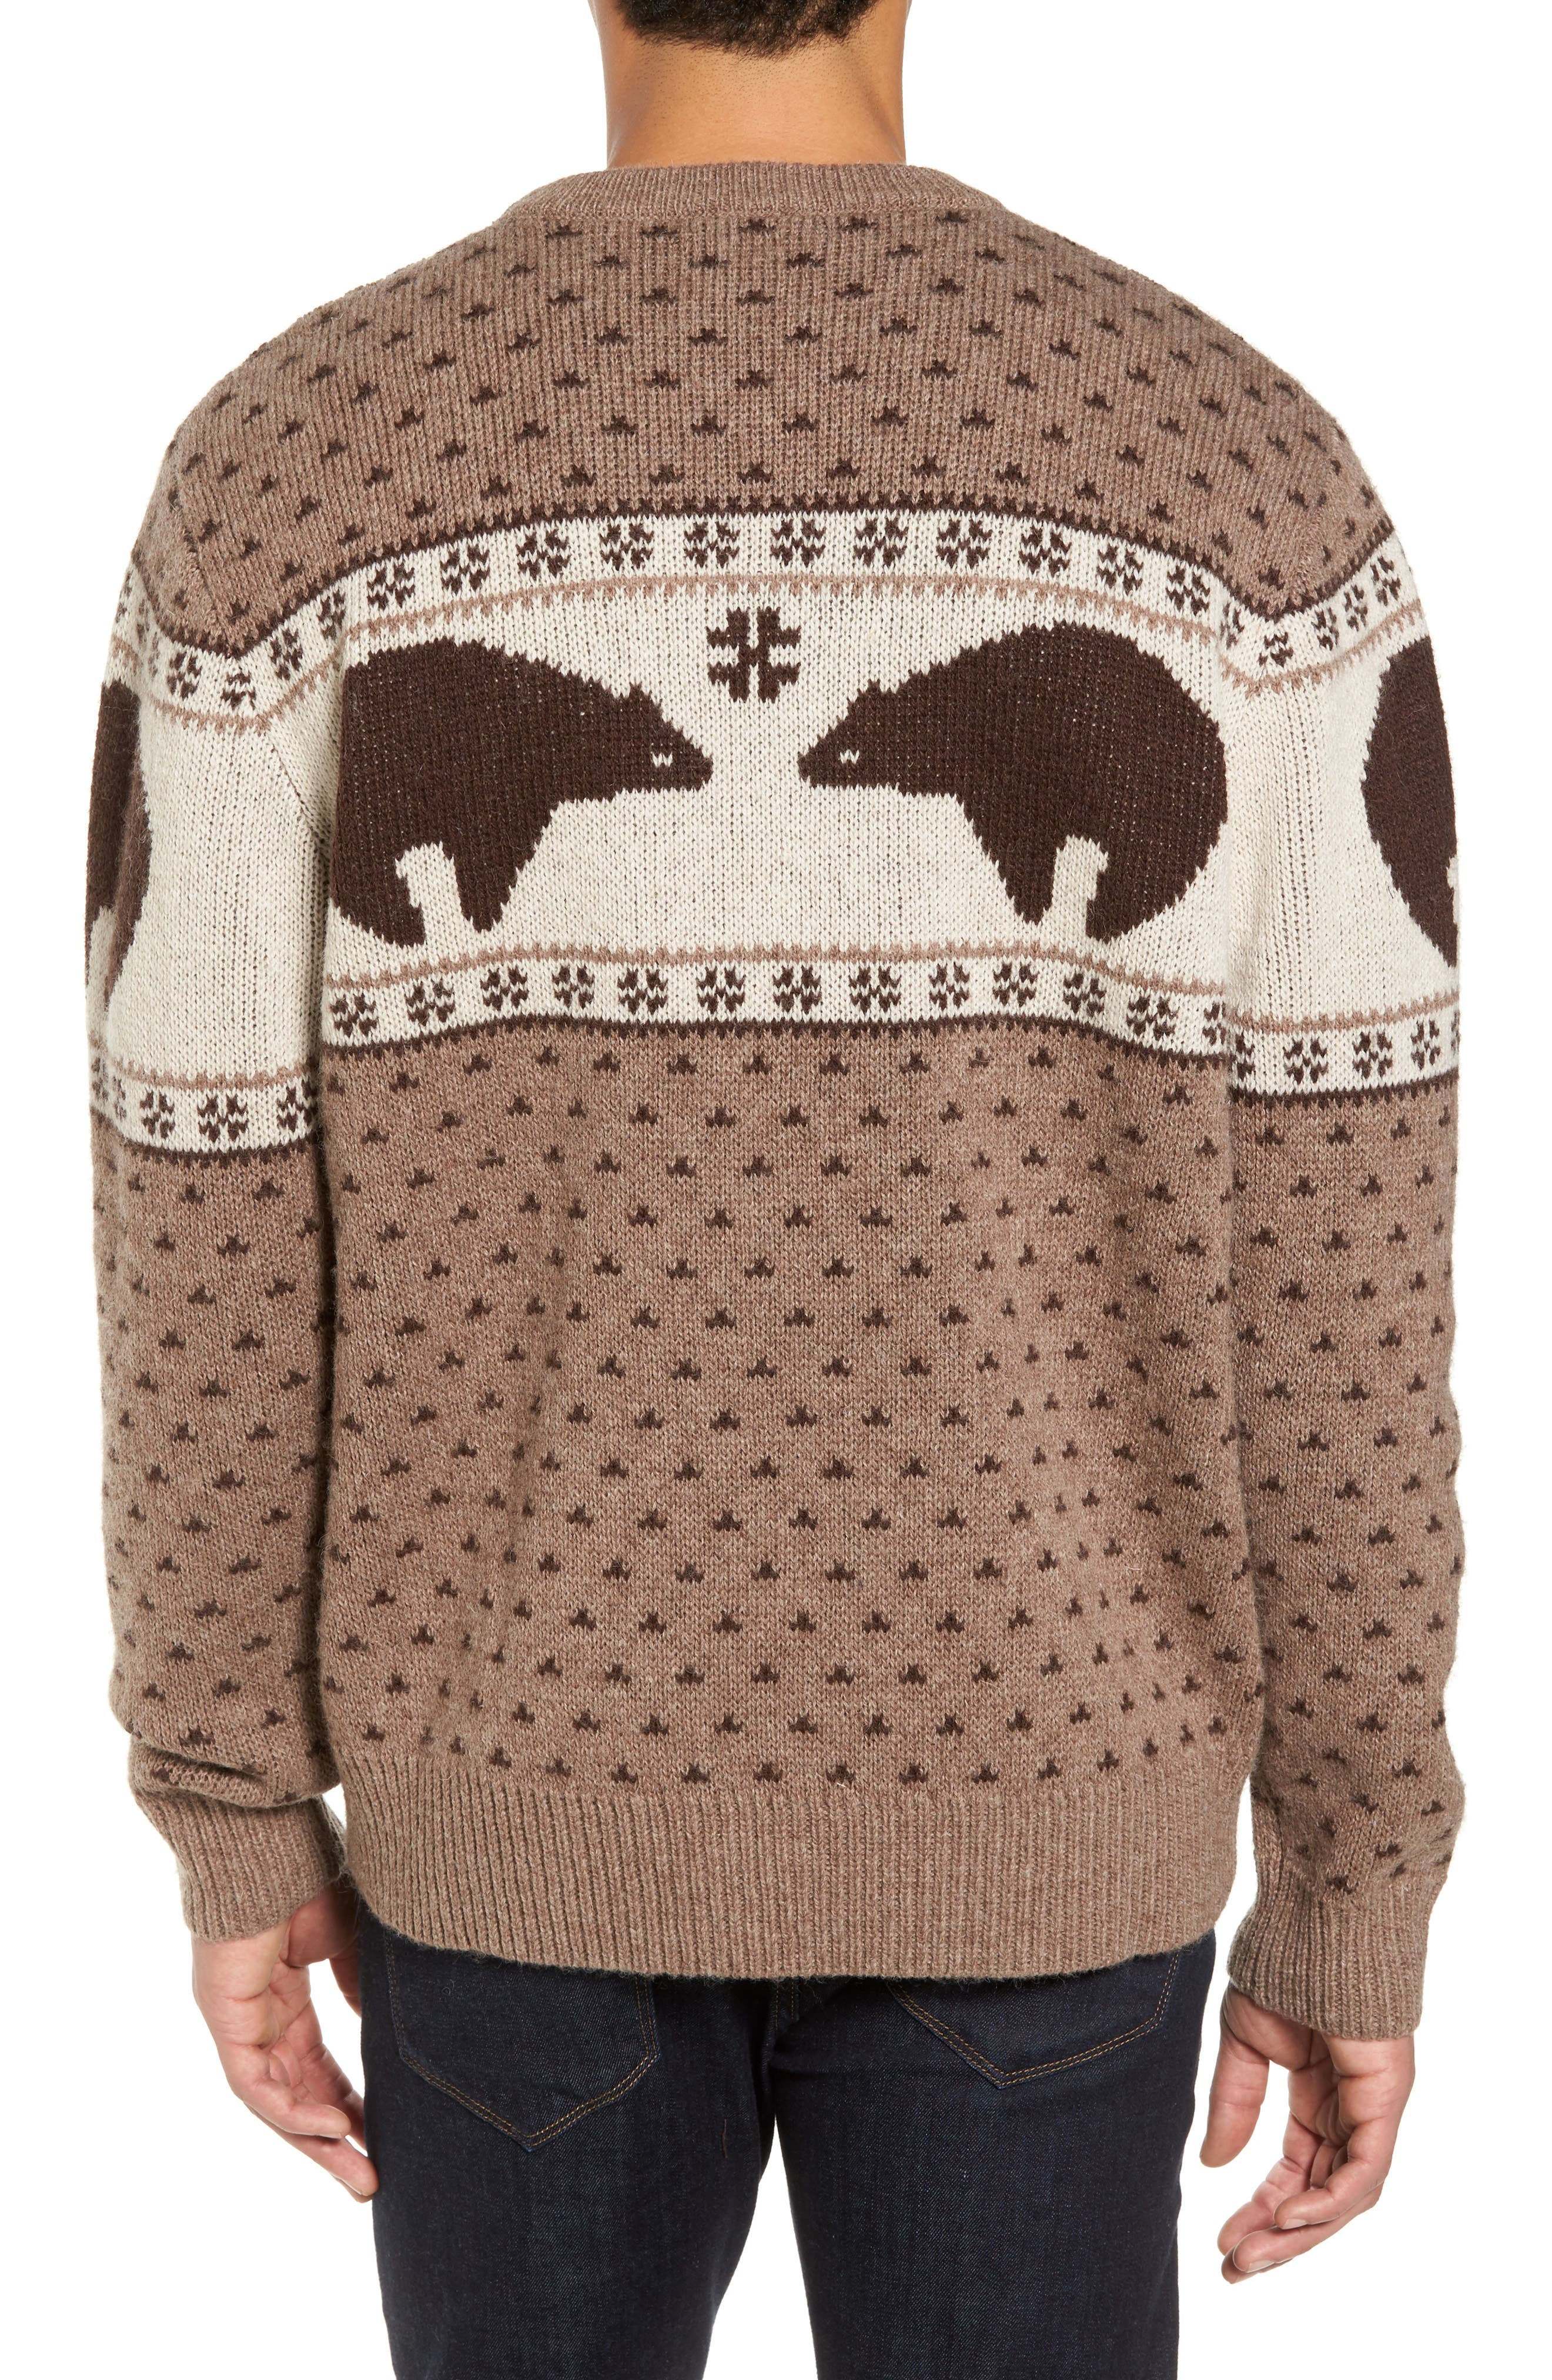 Bear Sweater,                             Alternate thumbnail 2, color,                             250